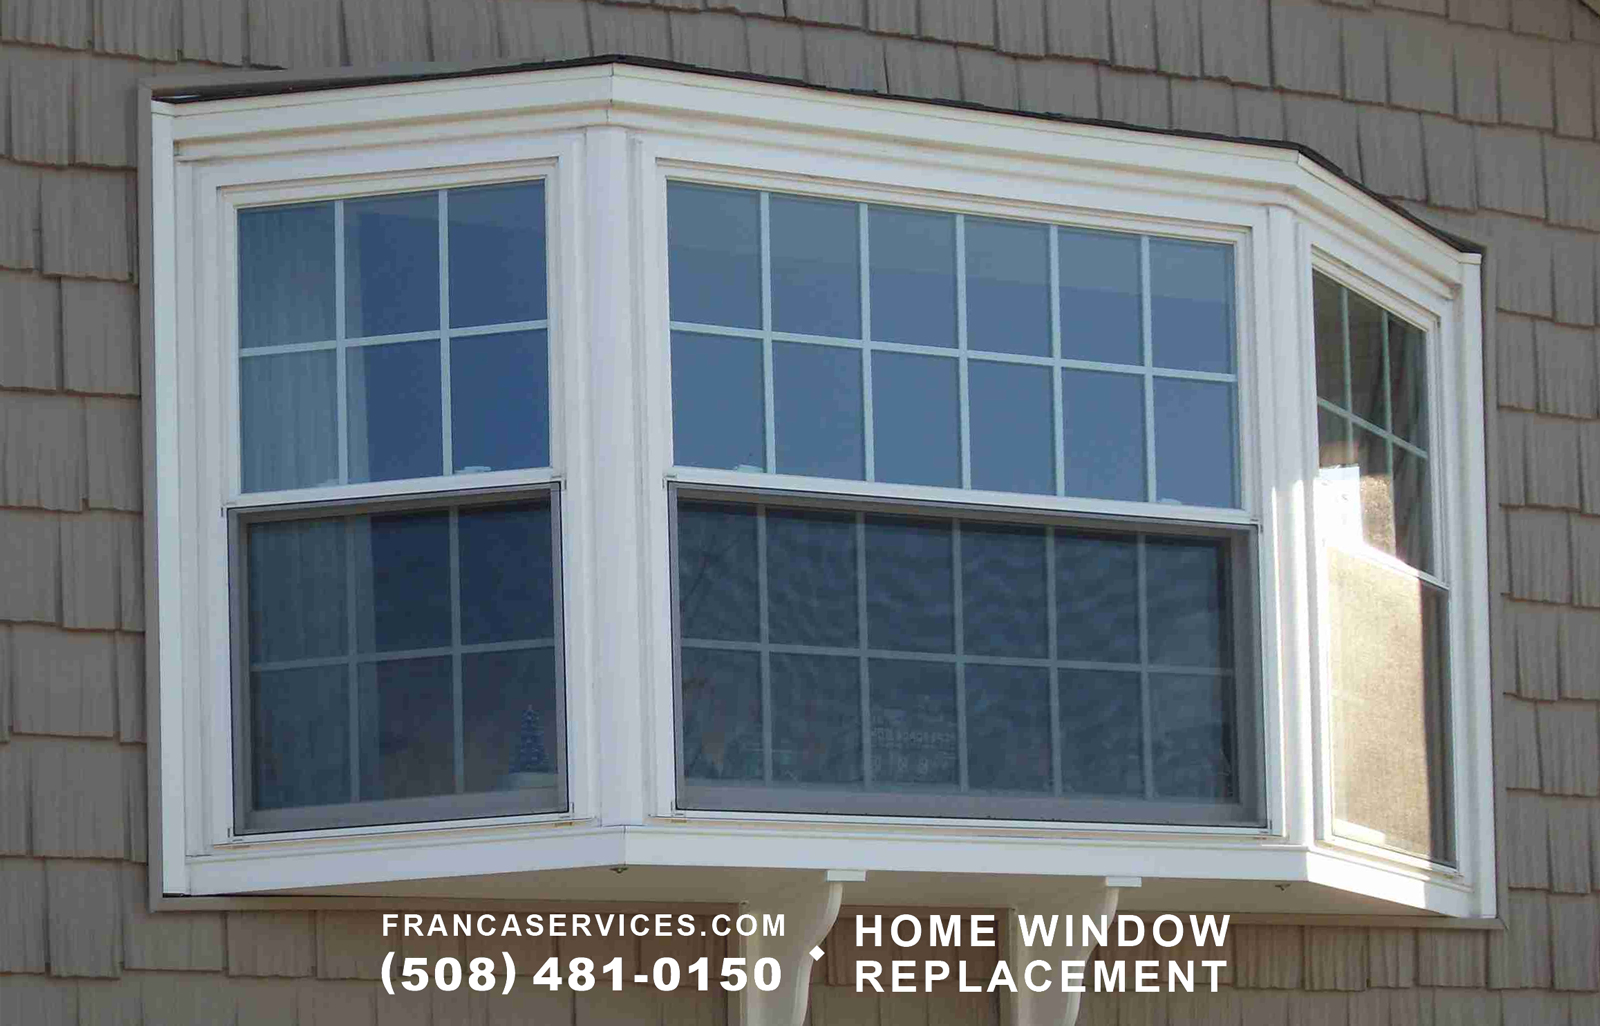 Replacement windows photos replacement windows for Replacement window design ideas